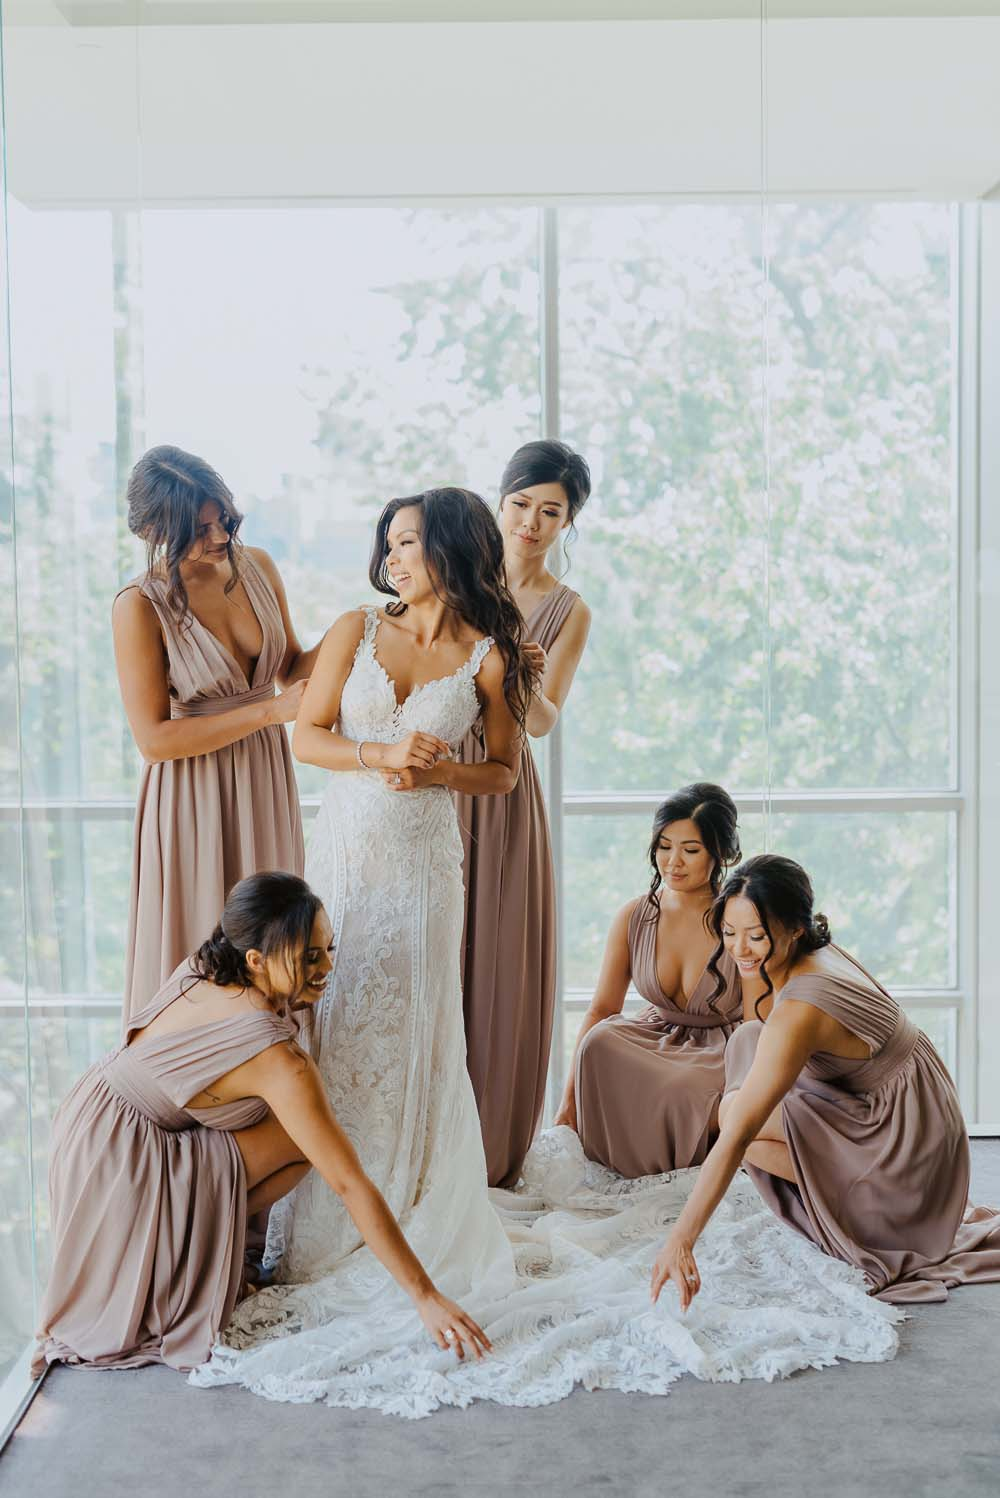 An Opulent Wedding At The Royal Conservatory Of Music - bridal party